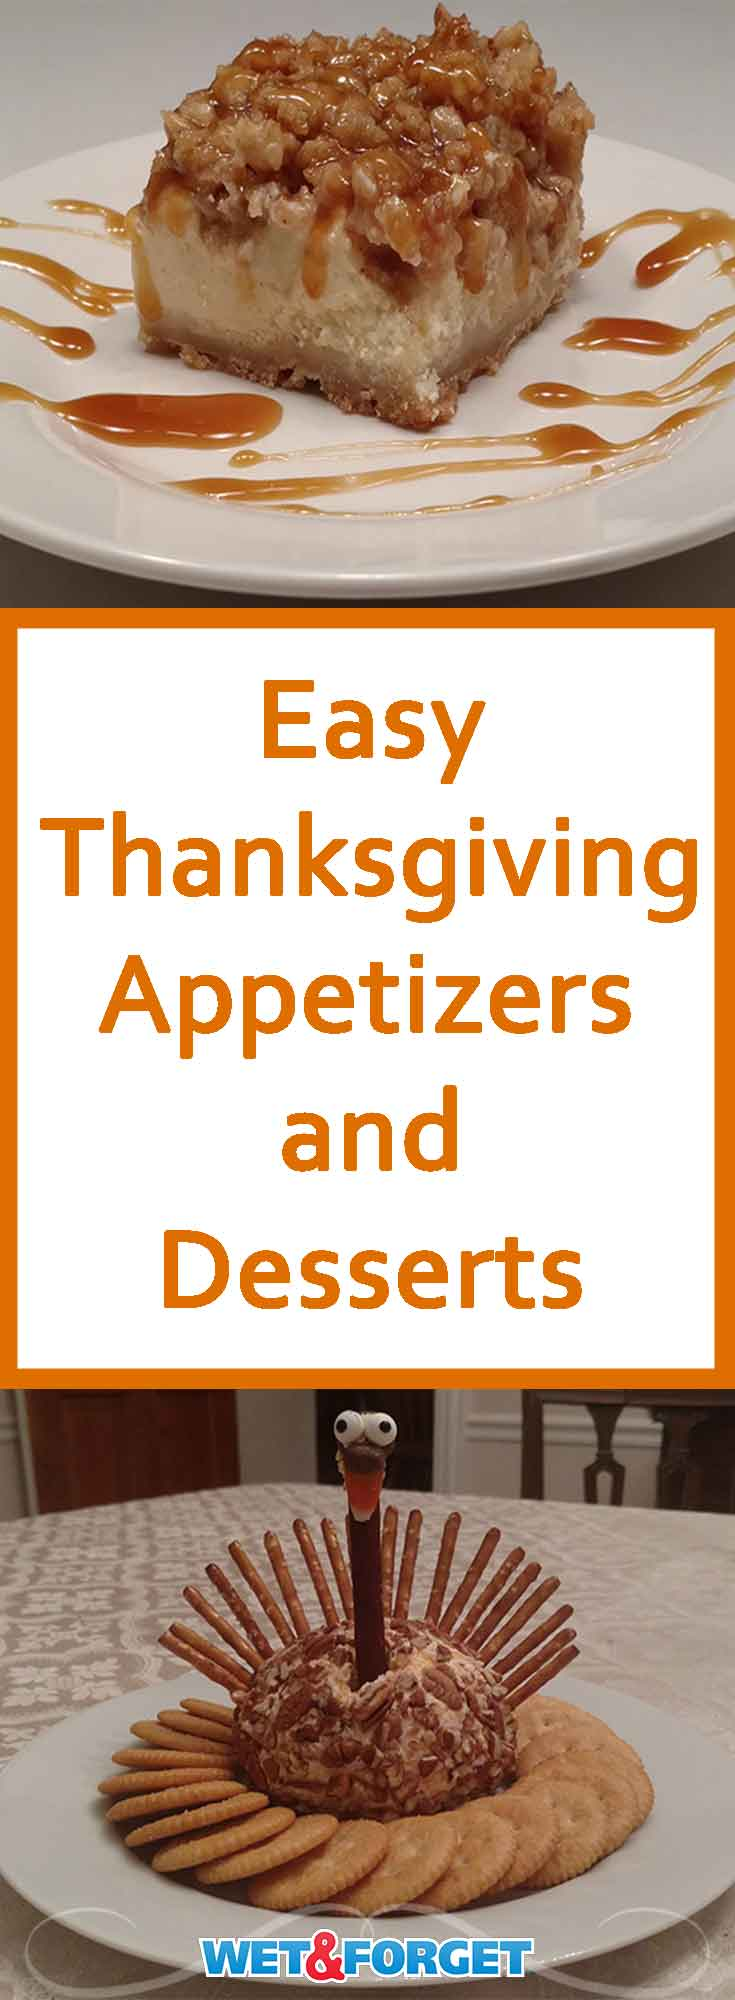 Whip up these easy appetizers or desserts for your Thanksgiving meal!